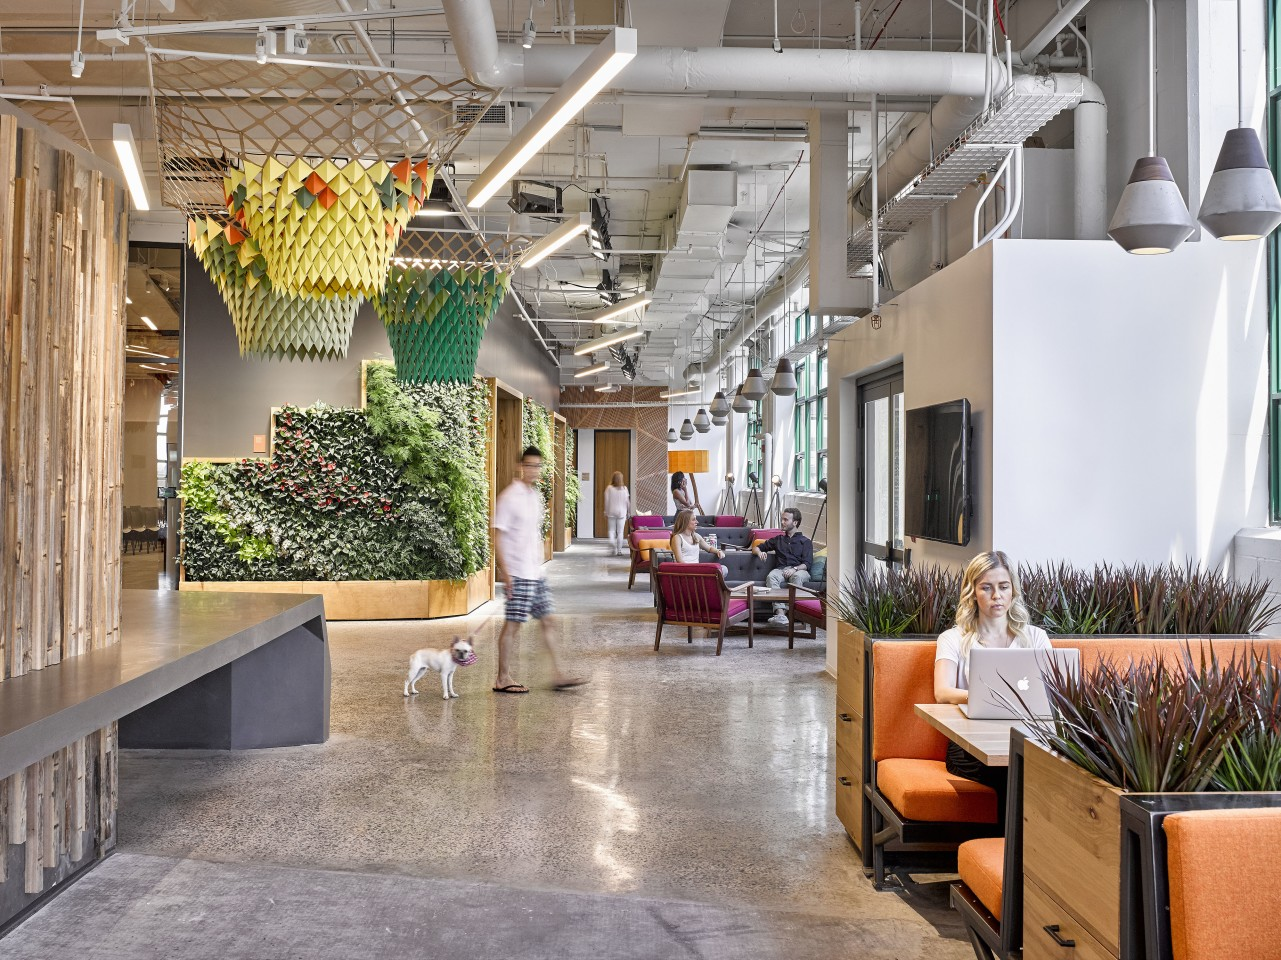 Etsy's new headquarters is located in Brooklyn, New York City, and was designed by Gensler